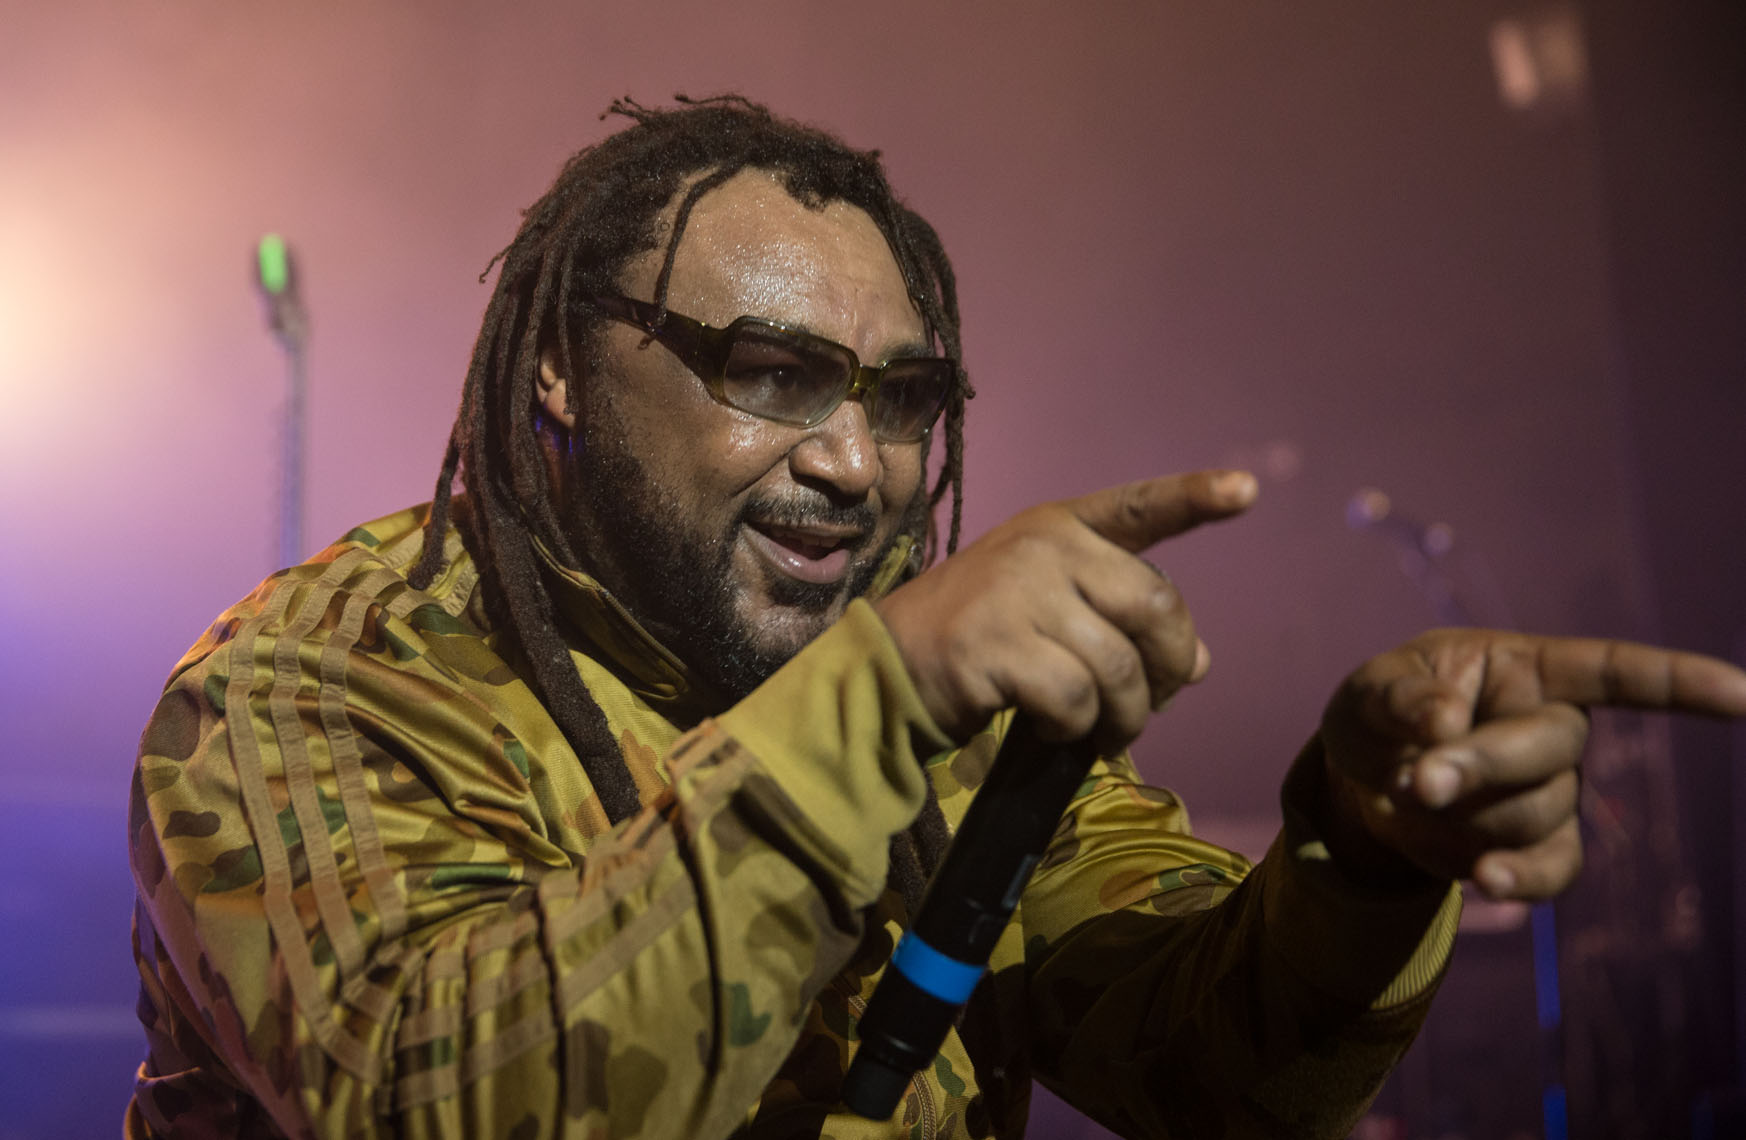 Skindred_London-2226-DUP.jpg